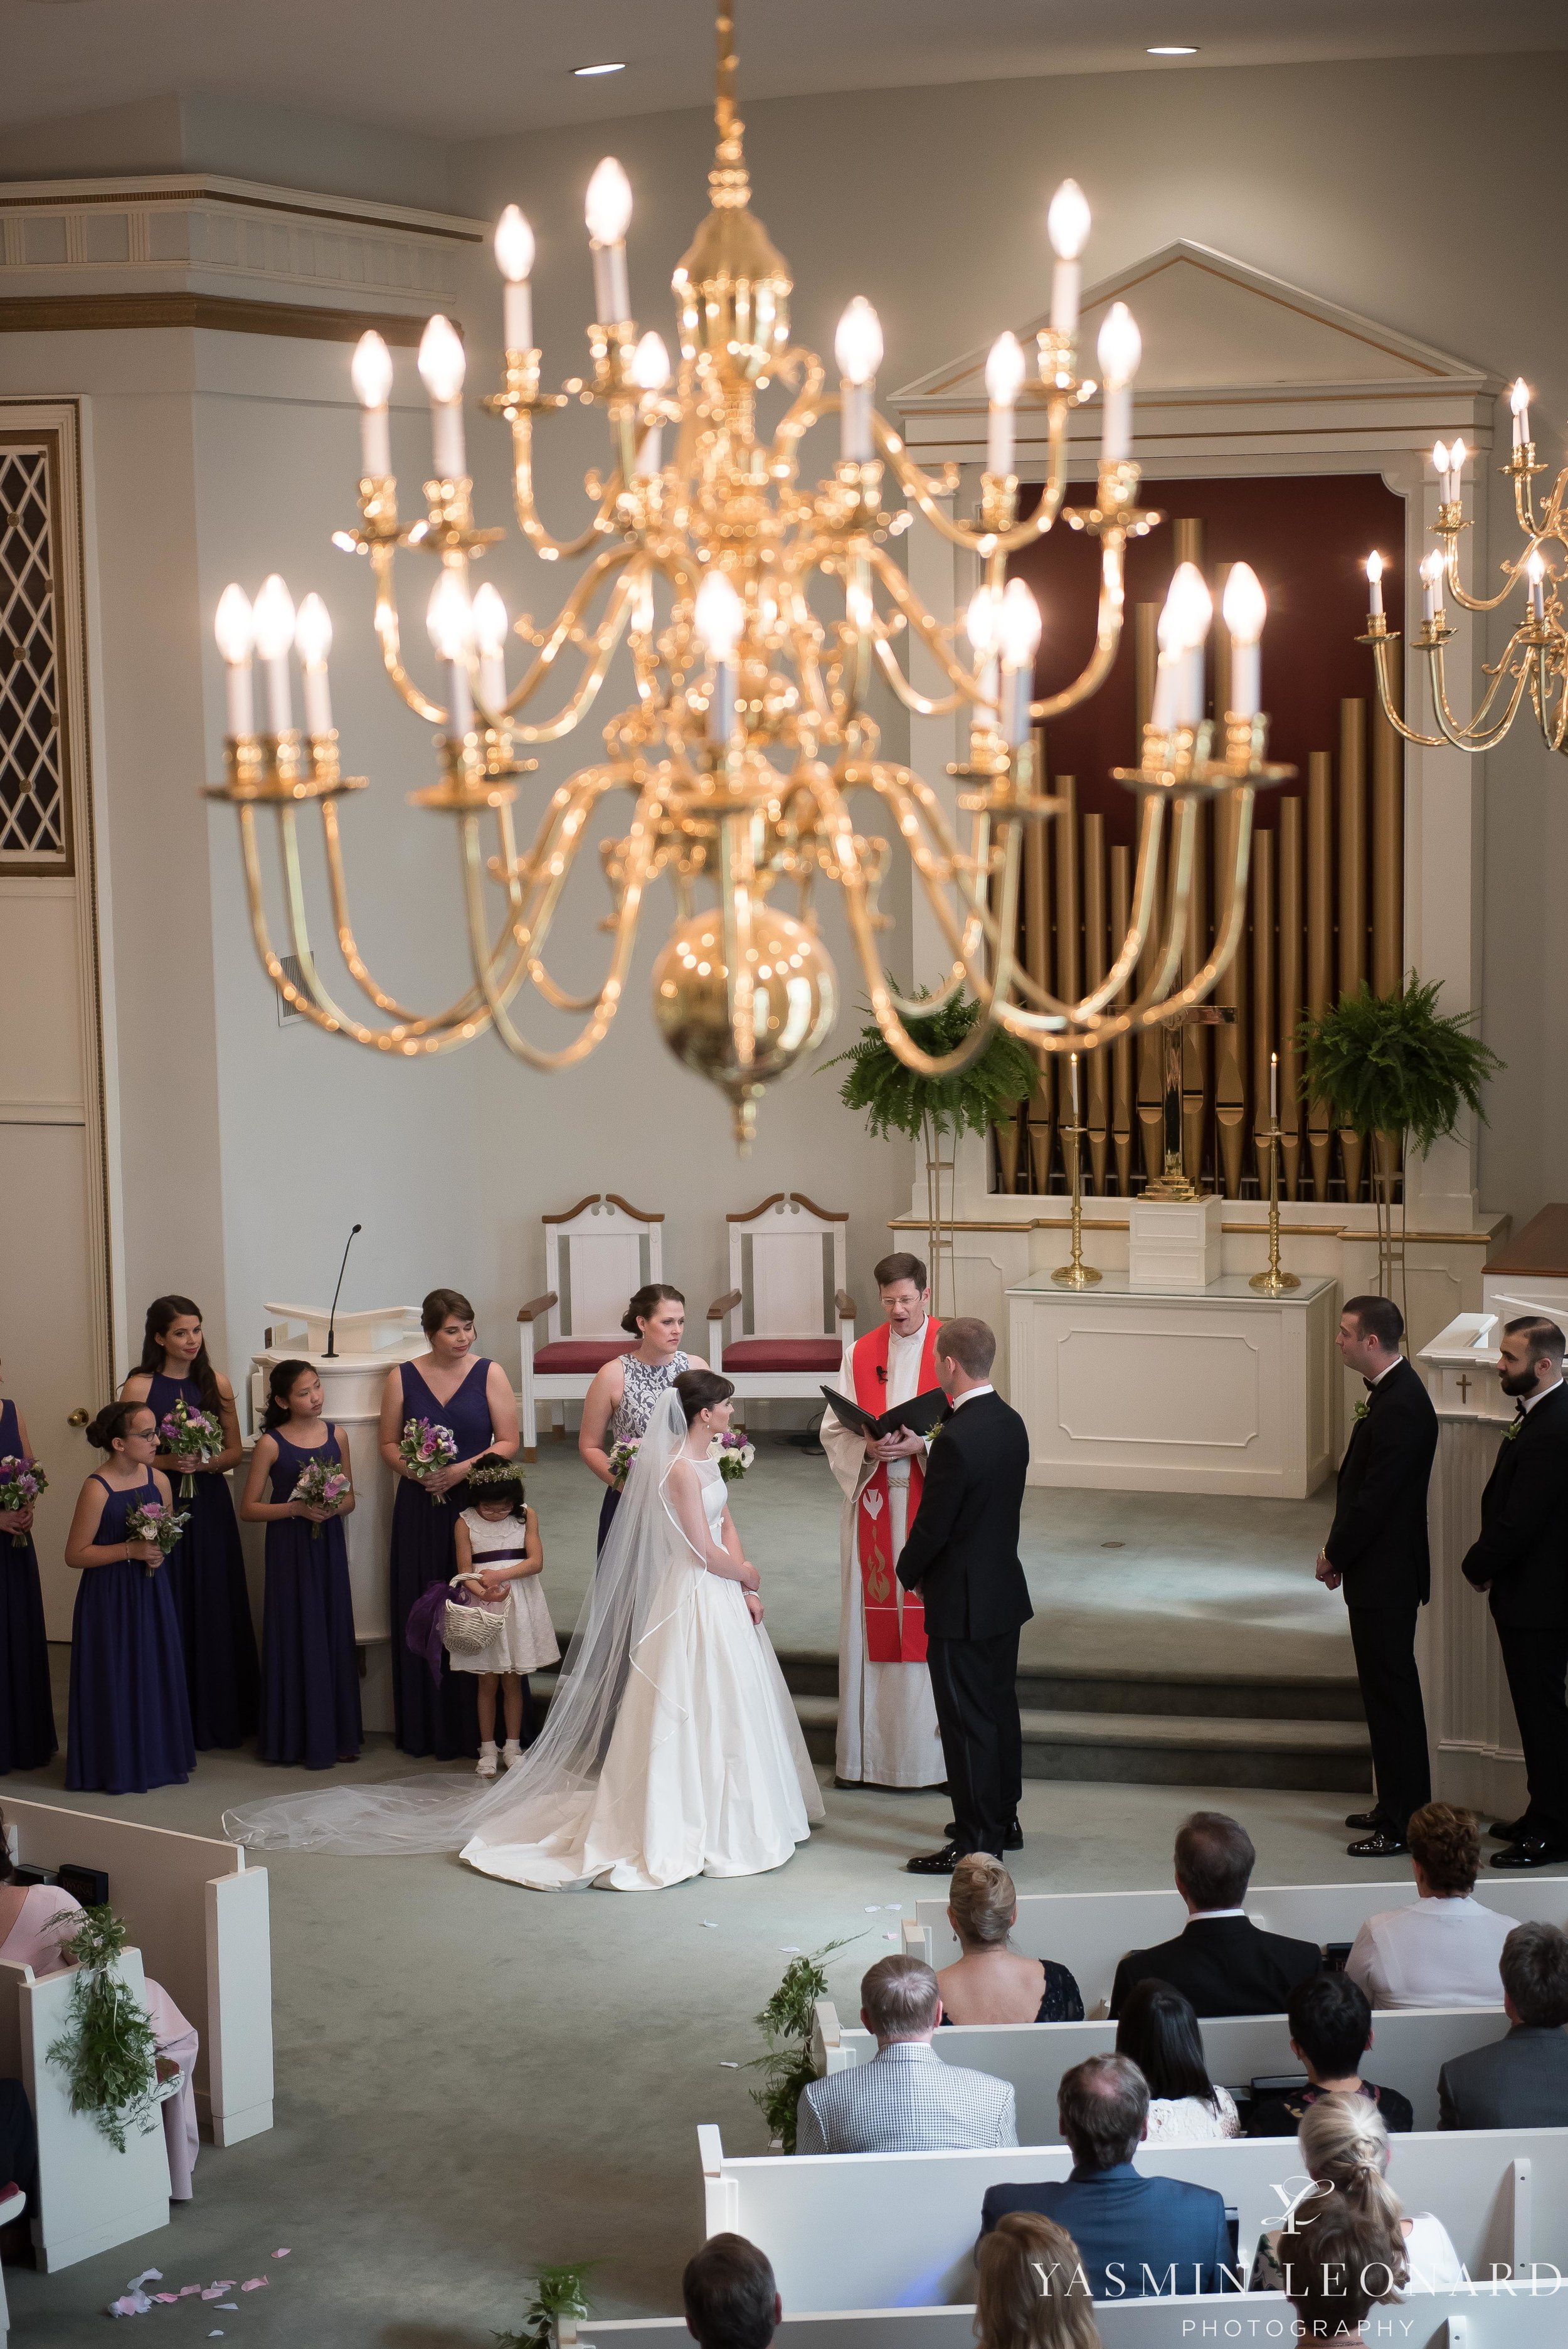 JH ADAMS INN - HIGH POINT UNIVERSITY CHAPEL WEDDING - HPU CHAPEL - HIGH POINT WEDDINGS - NC WEDDING PHOTOGRAPHER - YASMIN LEONARD PHOTOGRAPHY - HIGH POINT NC - HIGH POINT WEDDINGS -30.jpg